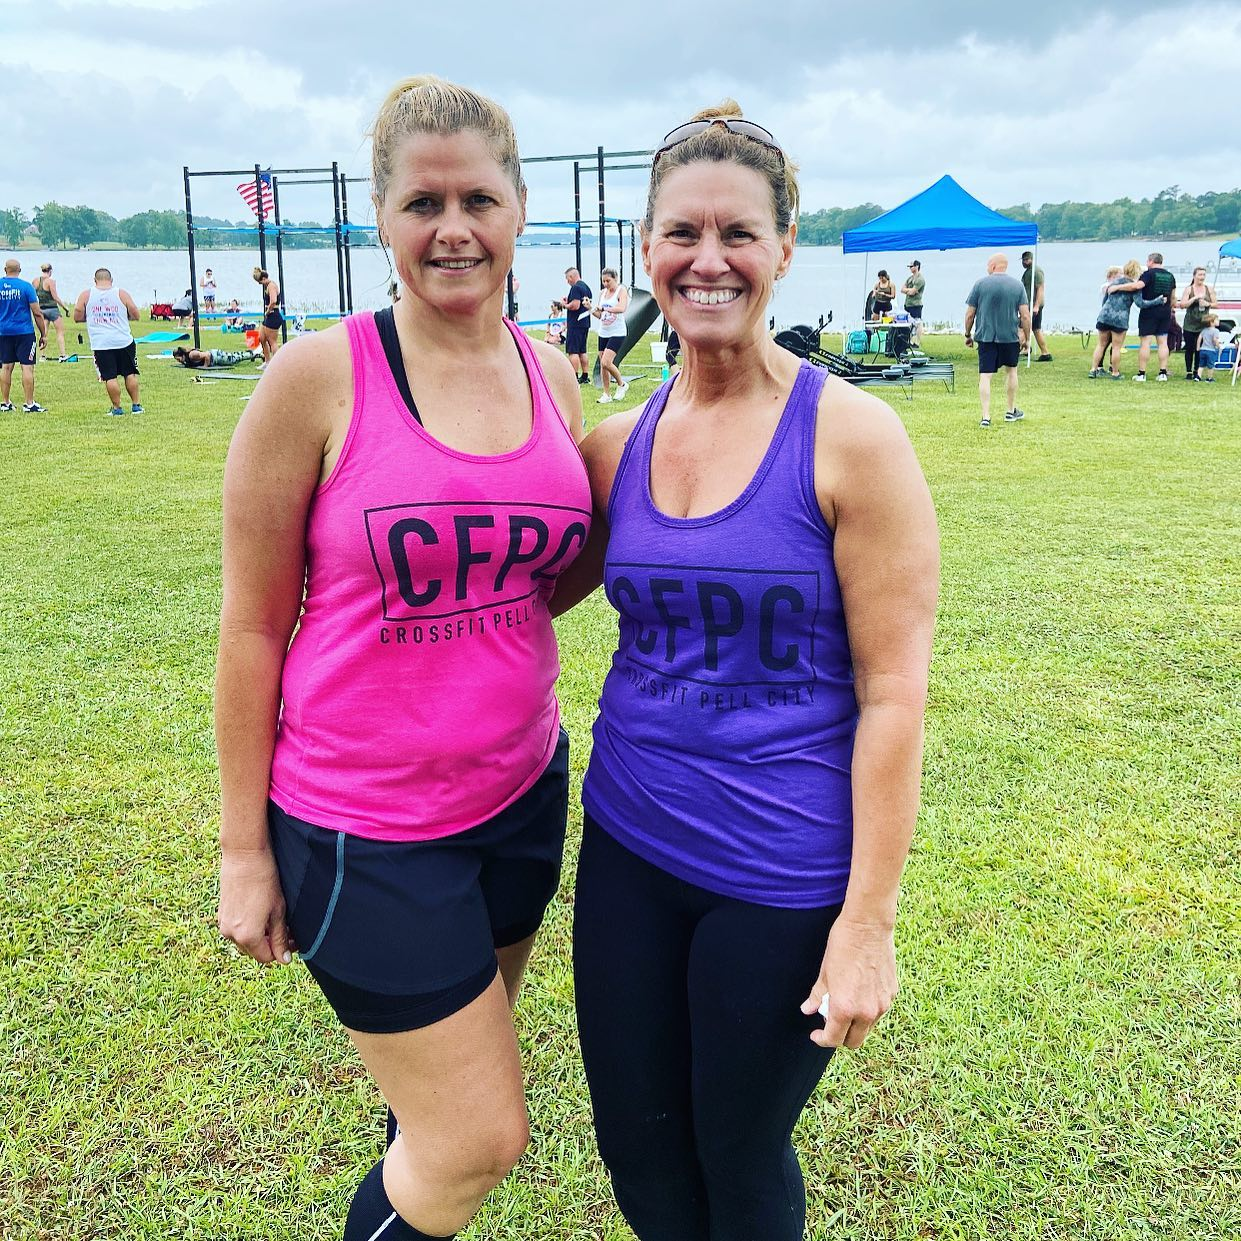 Misty and Michelles success story